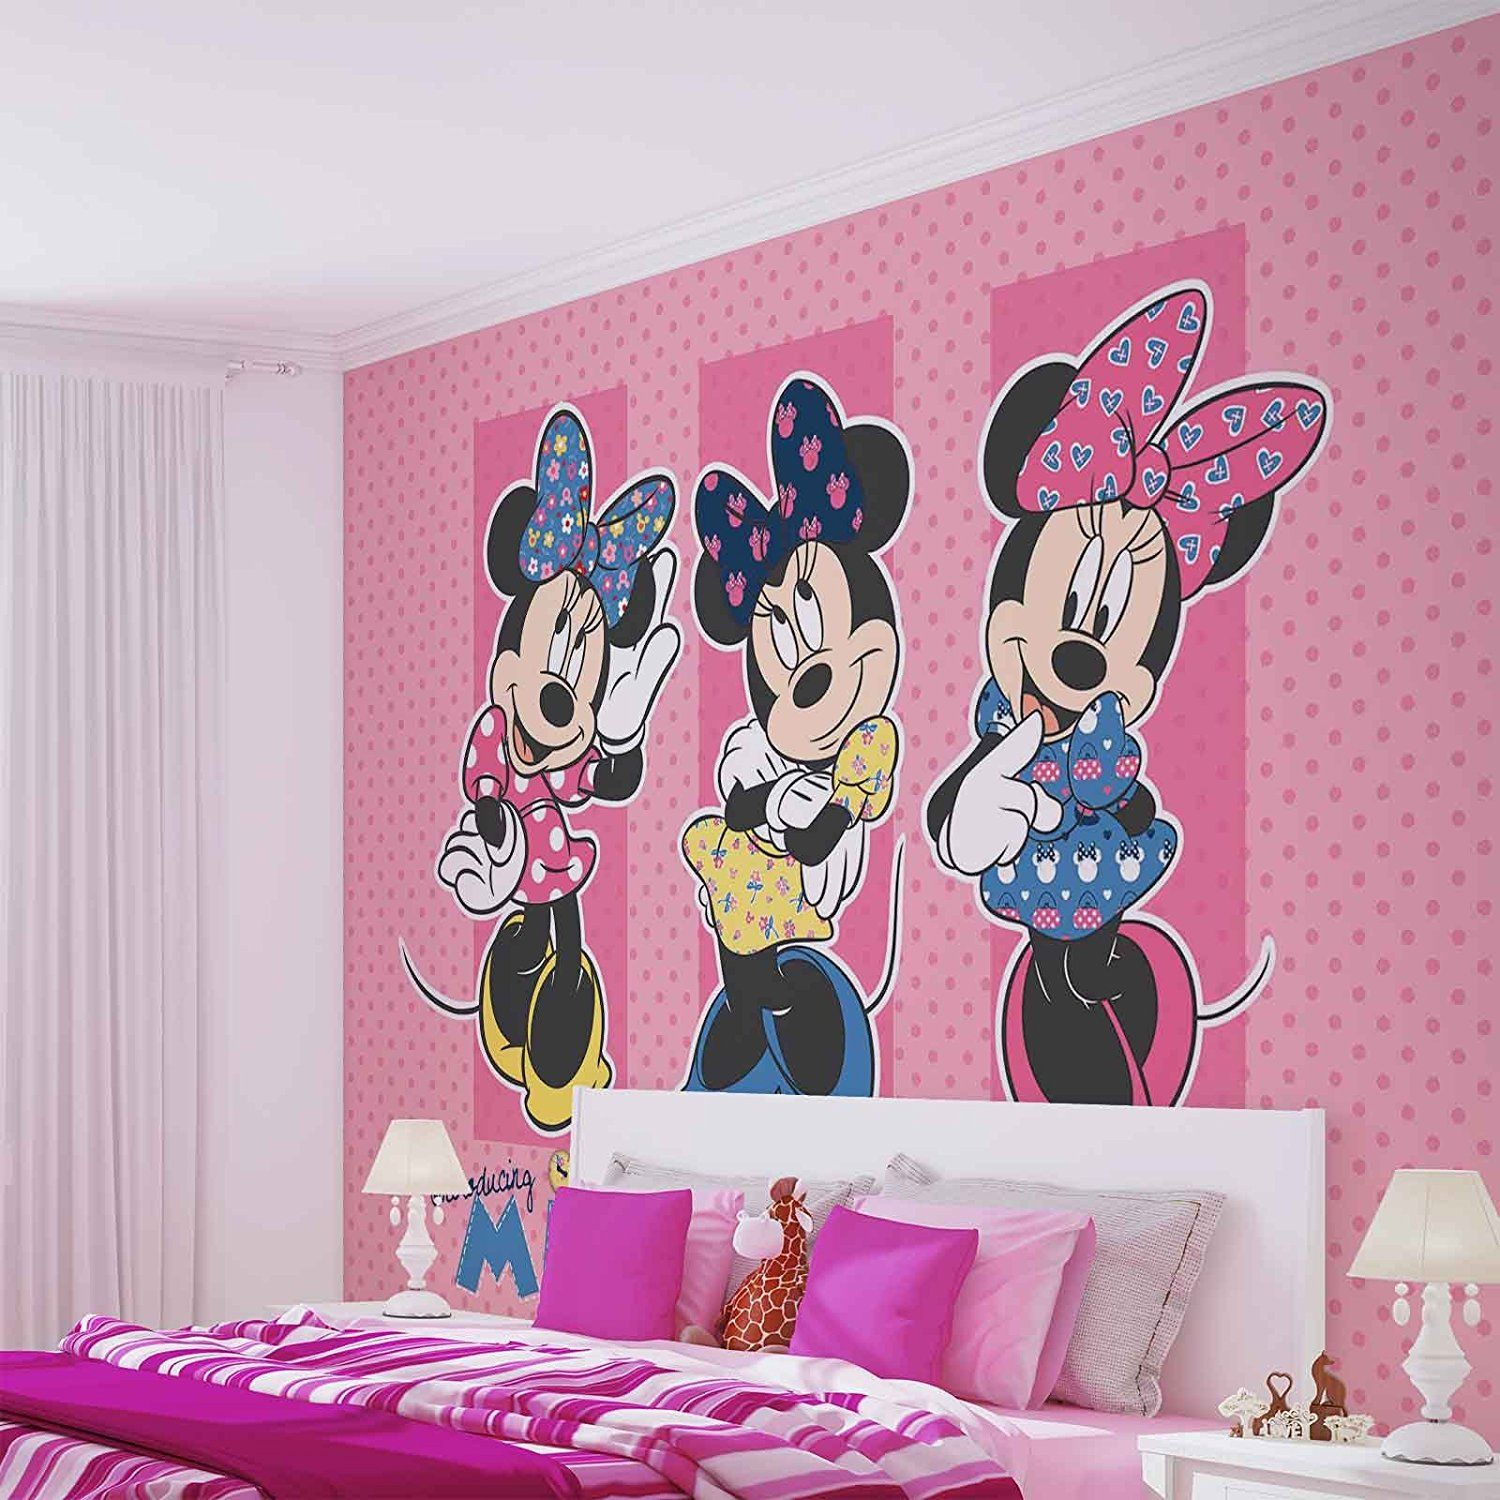 Minnie Mouse - Forwall - Fototapete - Tapete - Fotomural - Mural ...